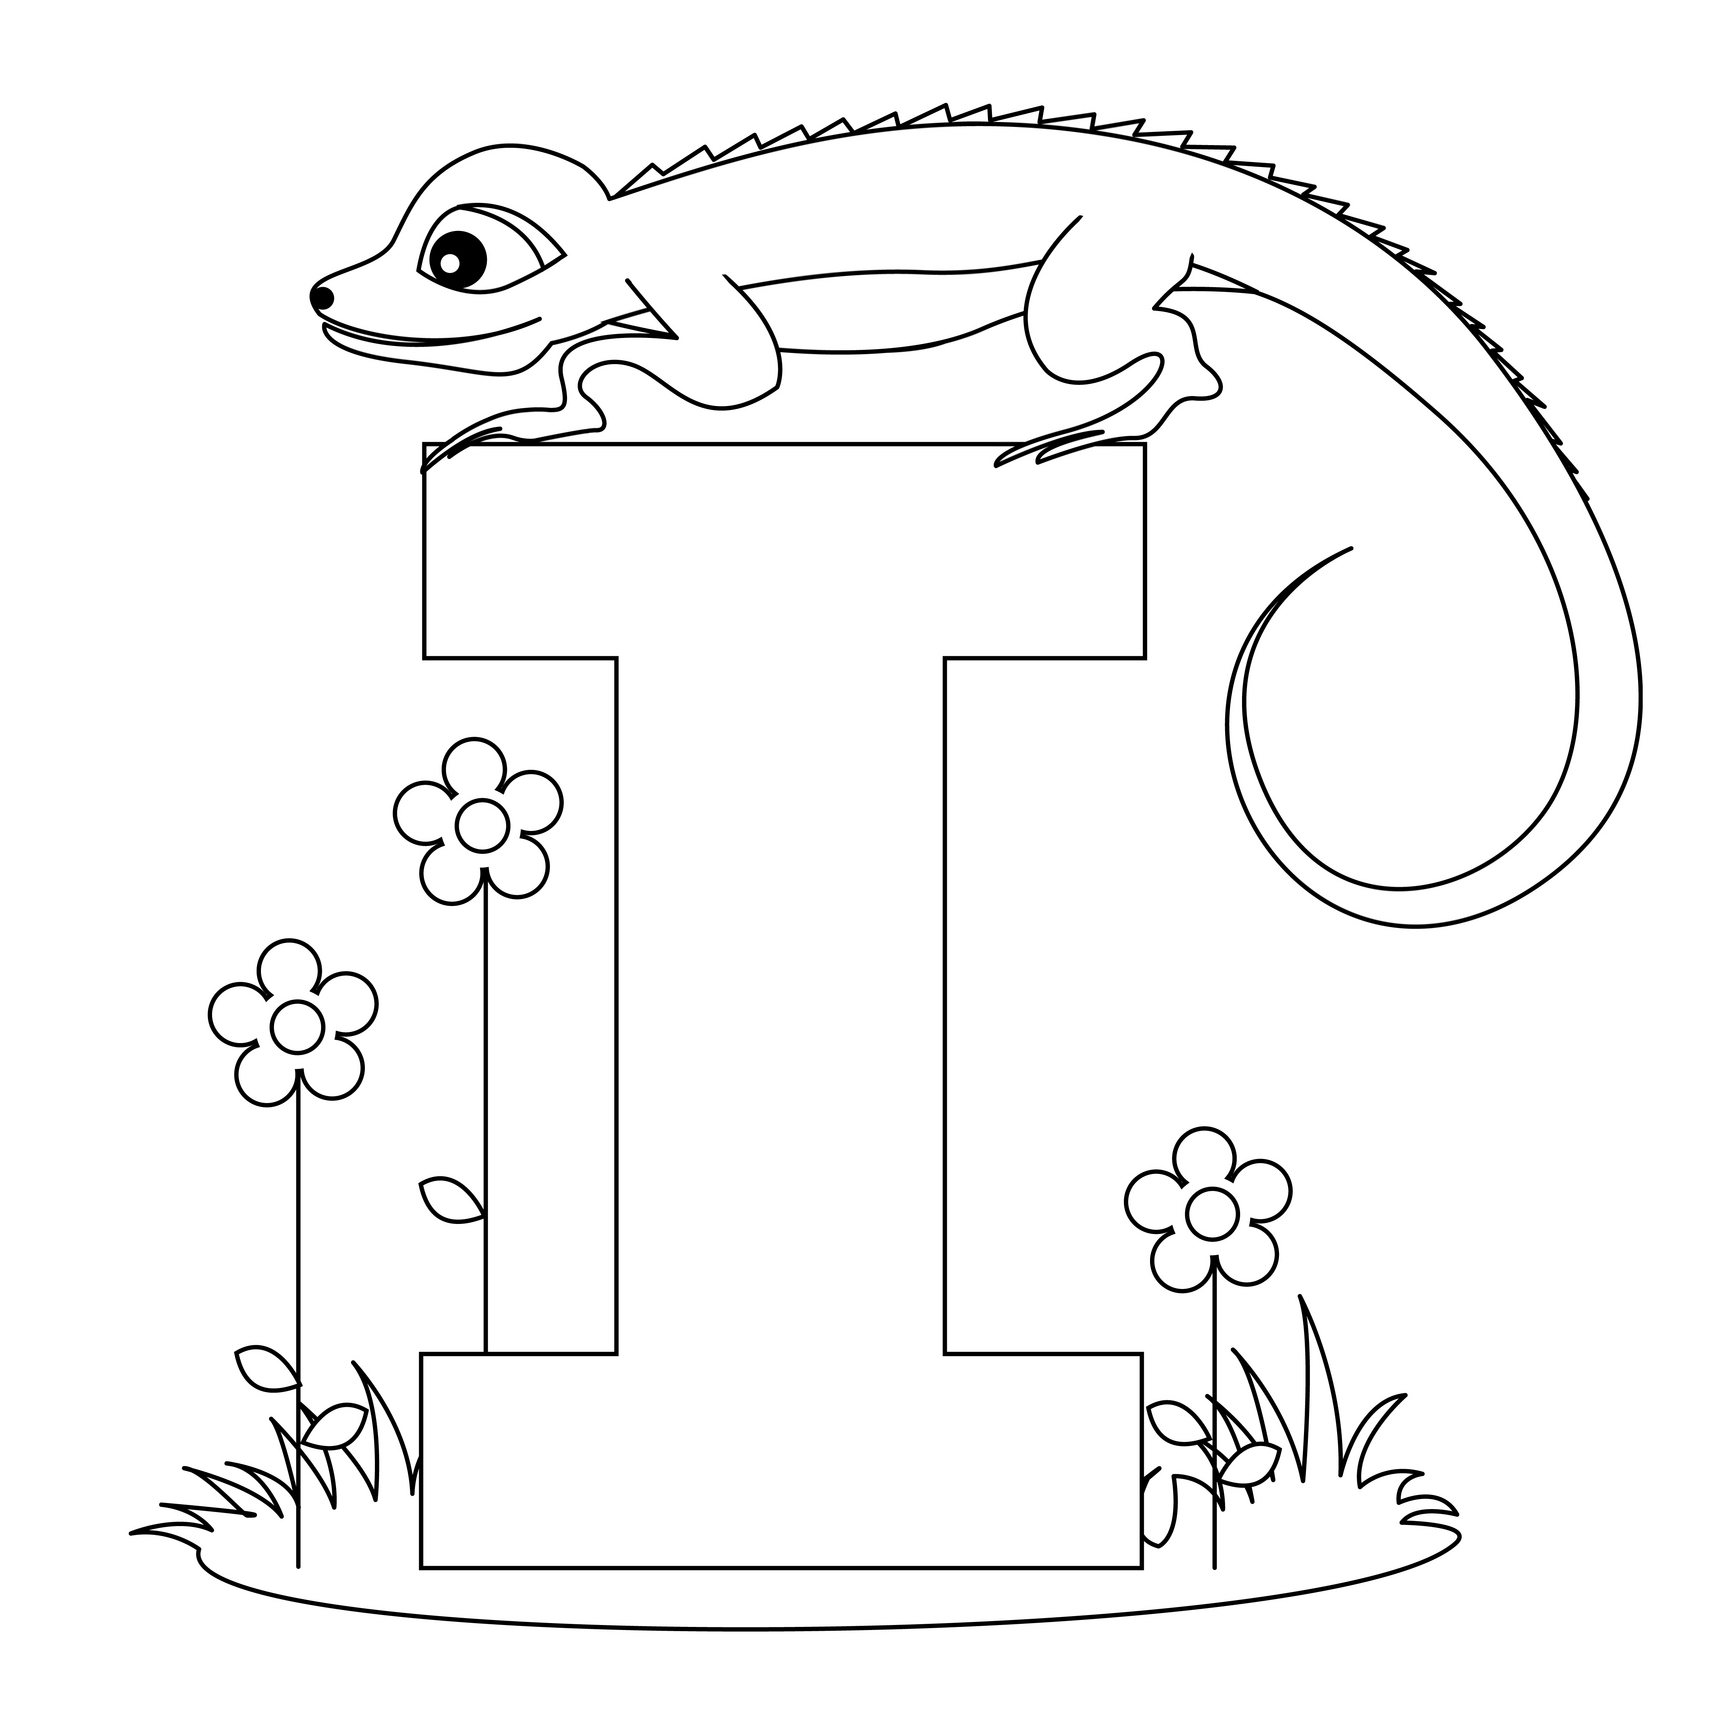 Letter i coloring pages to download